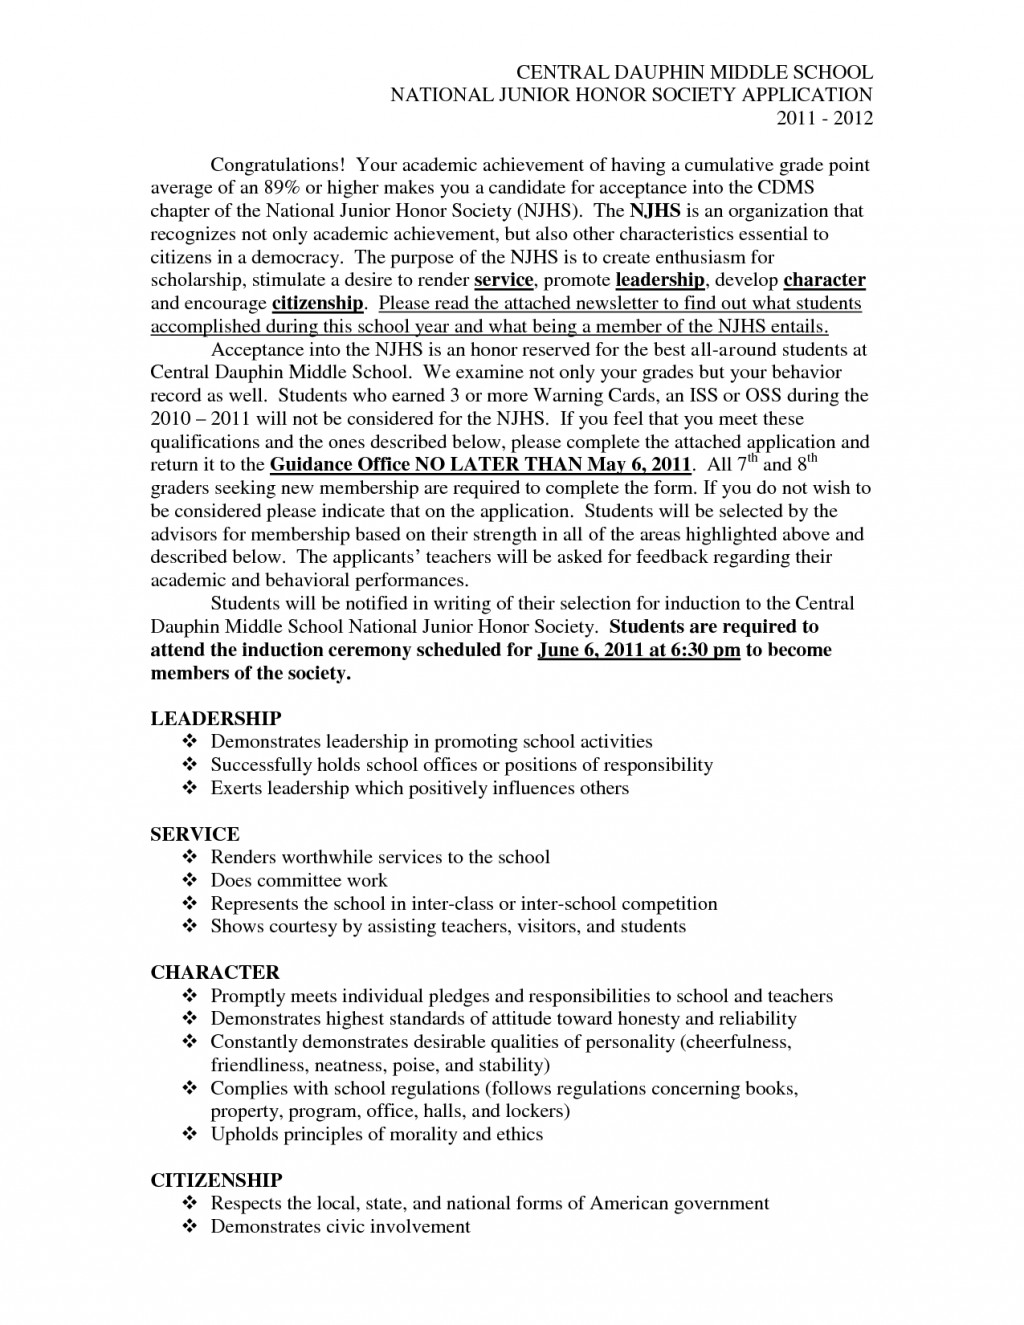 007 National Junior Honor Society Essay Samples Example Writing Introductions For Essays L Unusual Large